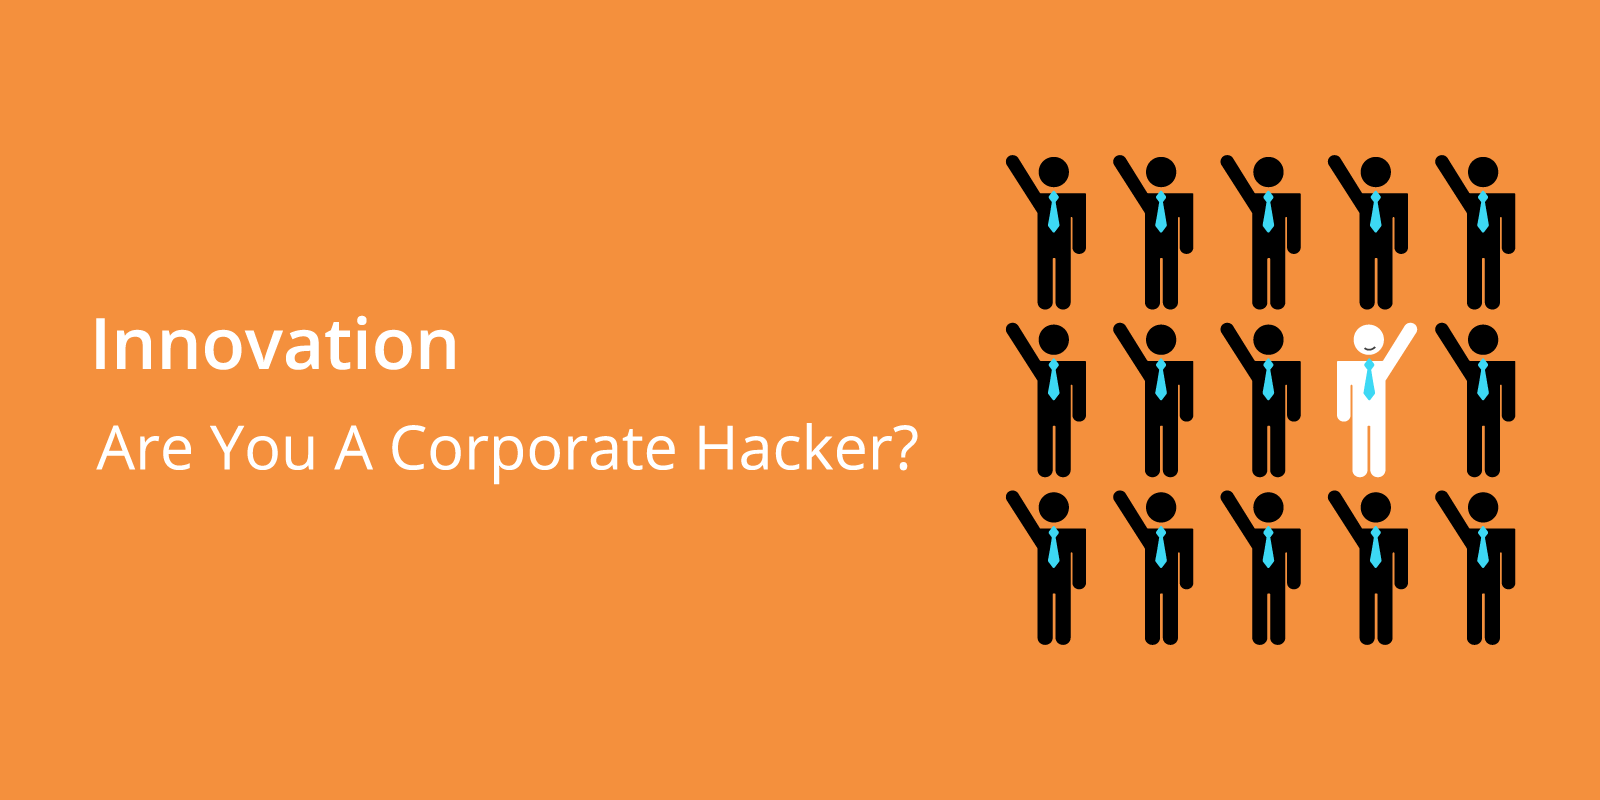 Corporate-hacking